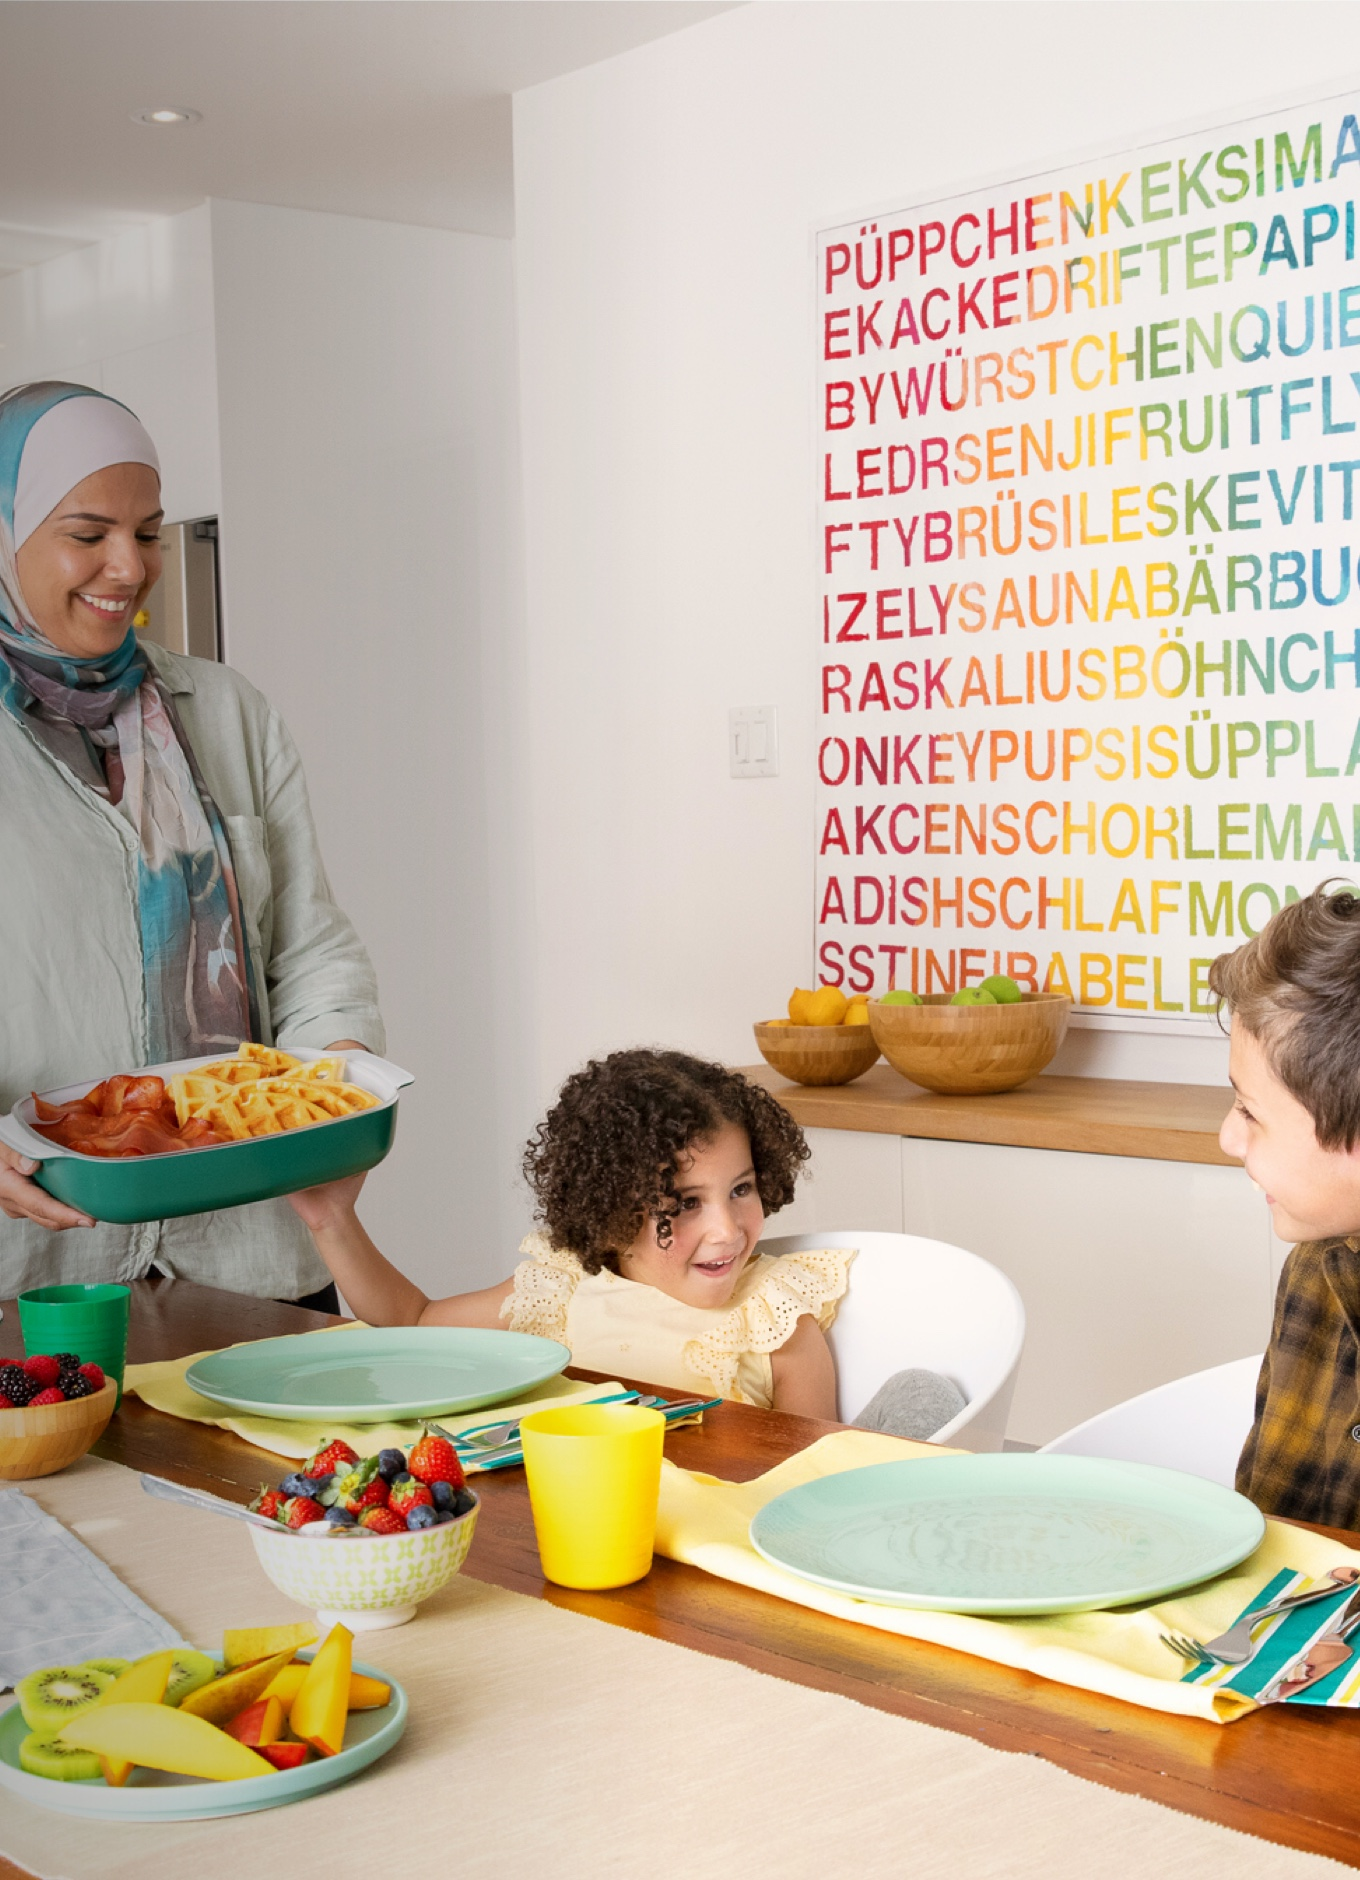 A young child ready to enjoy Halal chicken and waffles with her family.